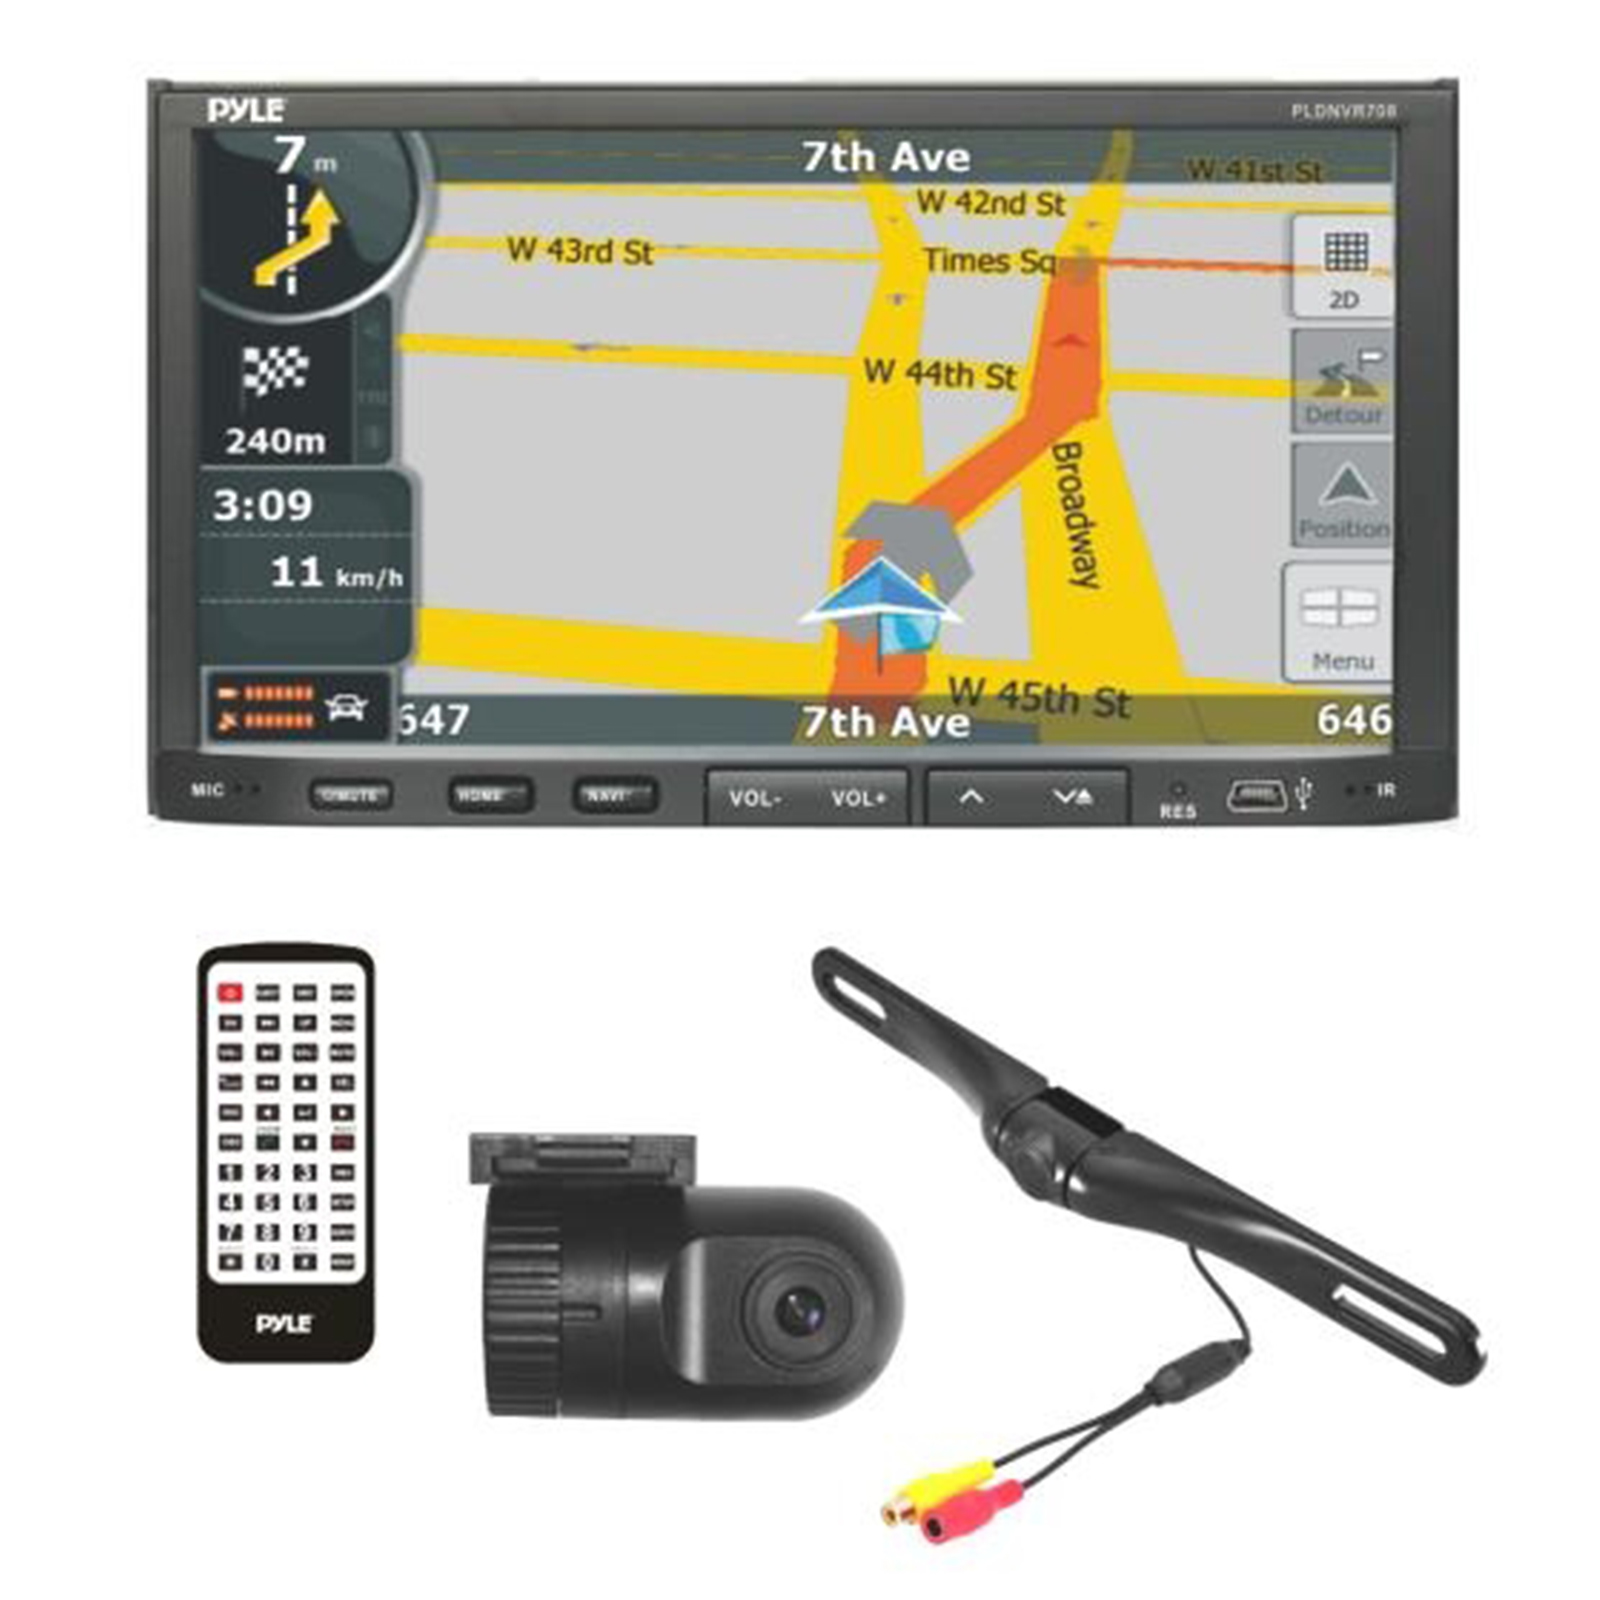 Stereo Receiver Headunit Radio, Rearview Backup Camera & Dash Cam Driving System Kit, GPS Navigat, BT Wireless... by Pyle